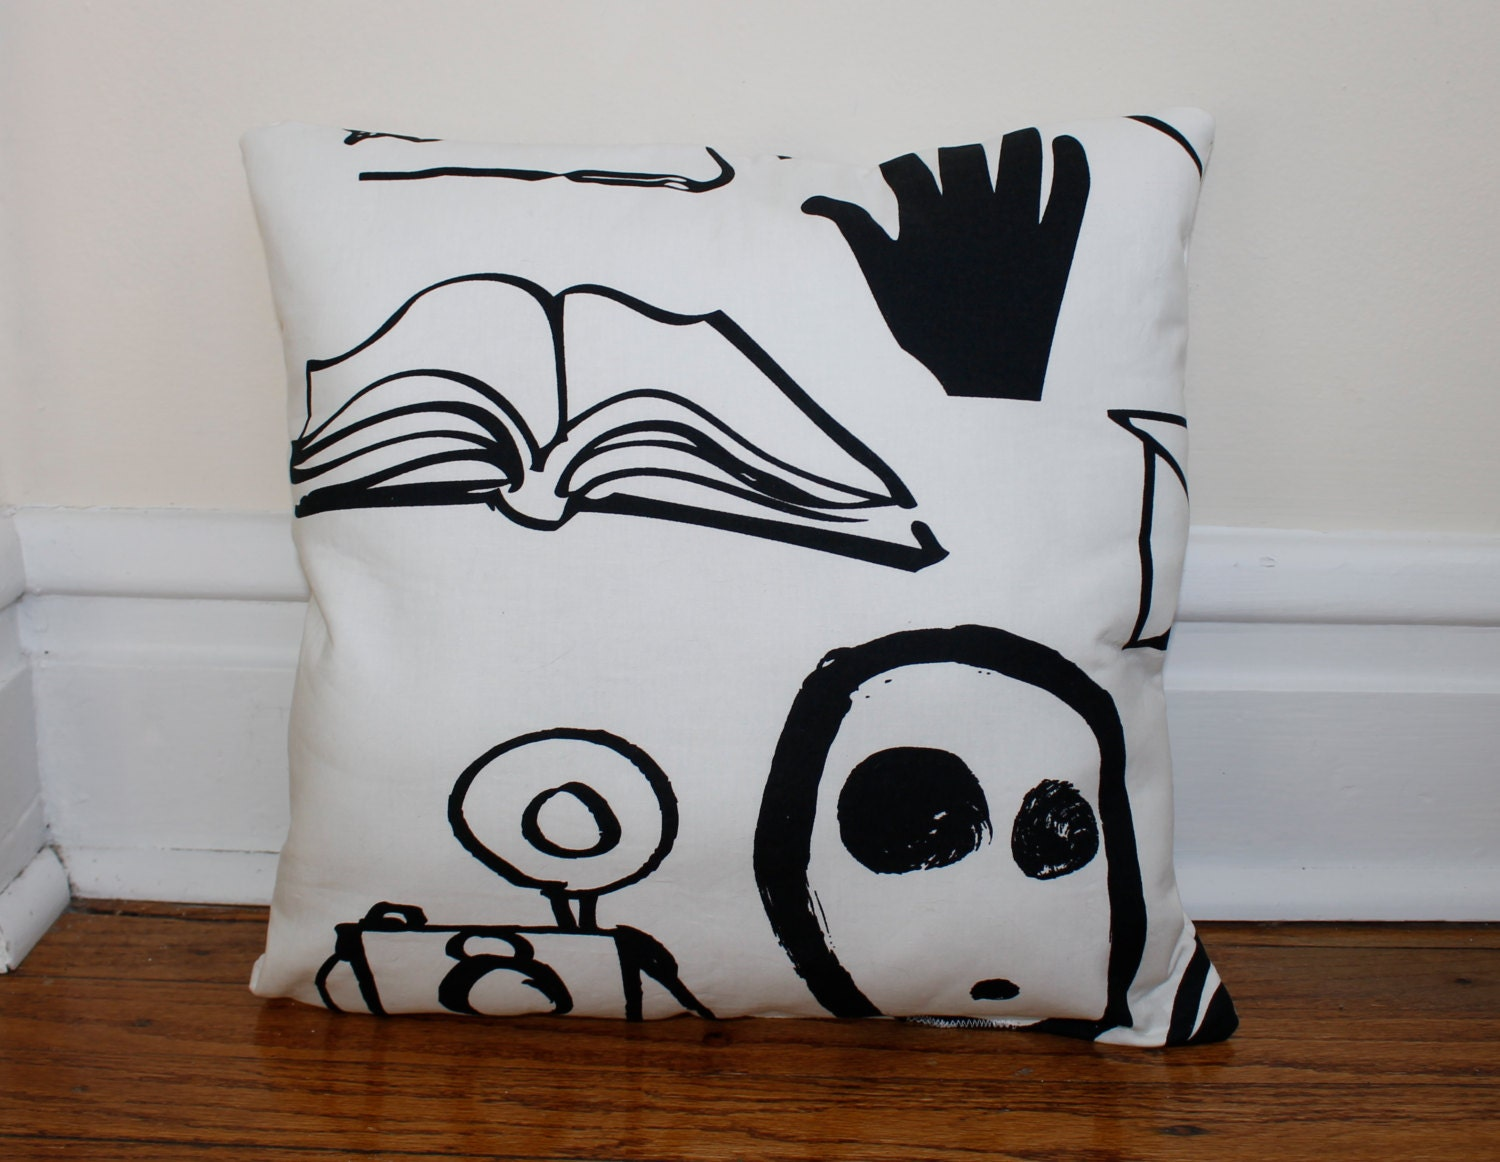 Black and White Throw Pillow, Cotton throw Pillow, Accent Pillow, Off White with Black 'ink' design pillow